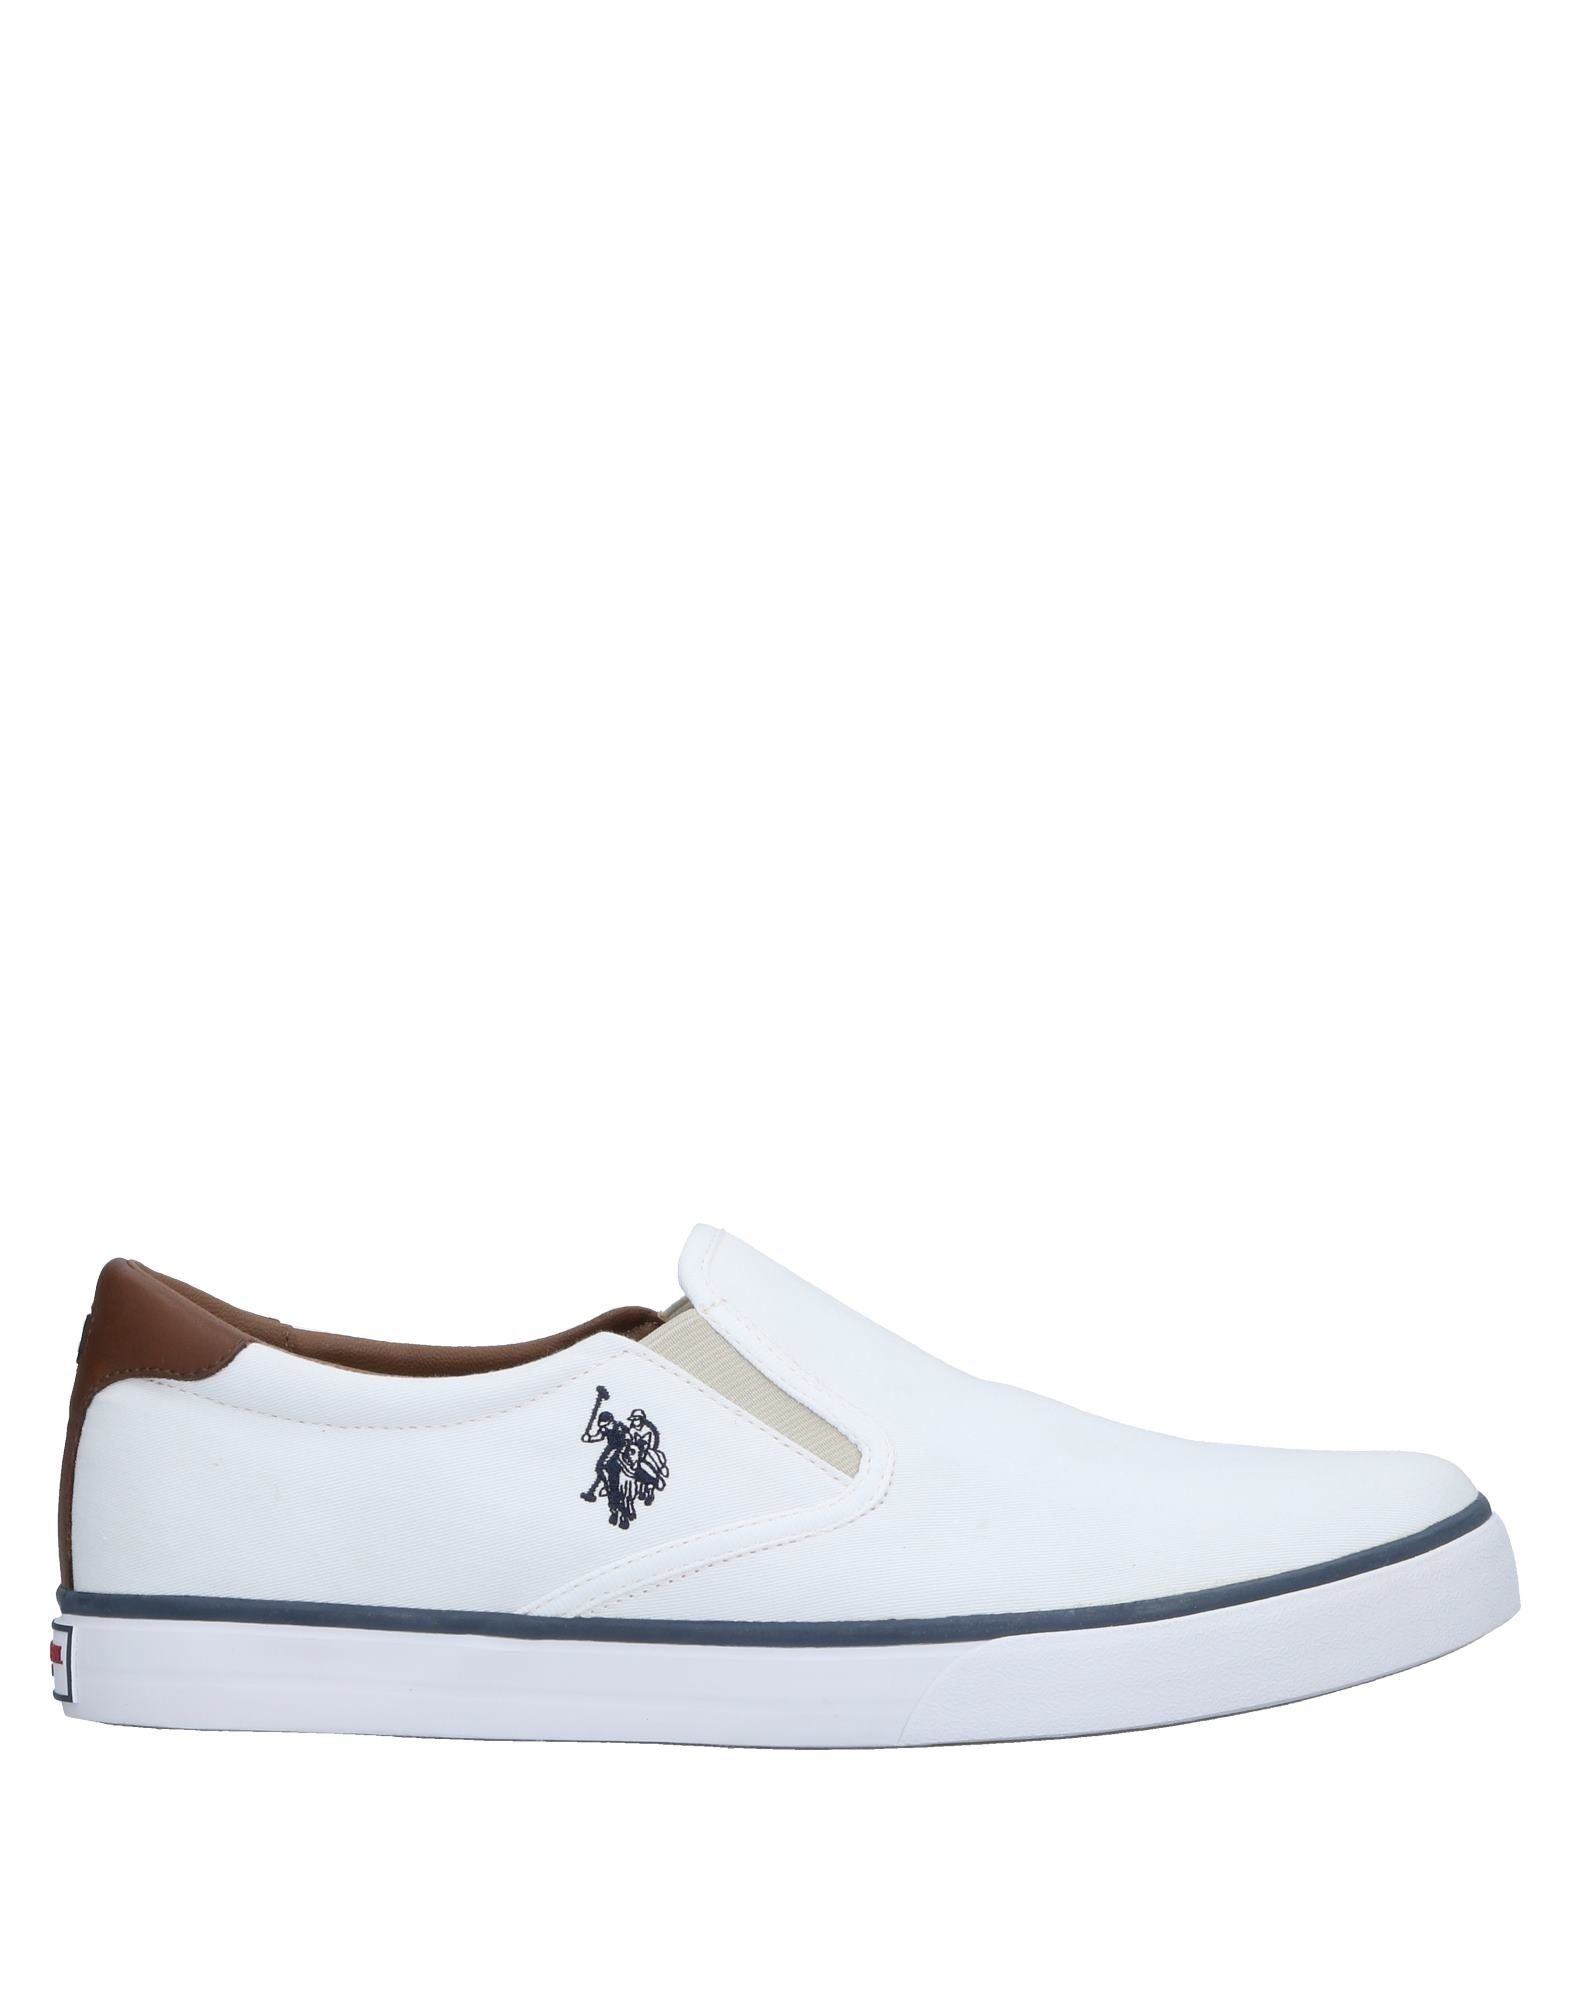 Sneakers Sneakers Sneakers U.S.Polo Assn. Uomo - 11517730OM 336a21